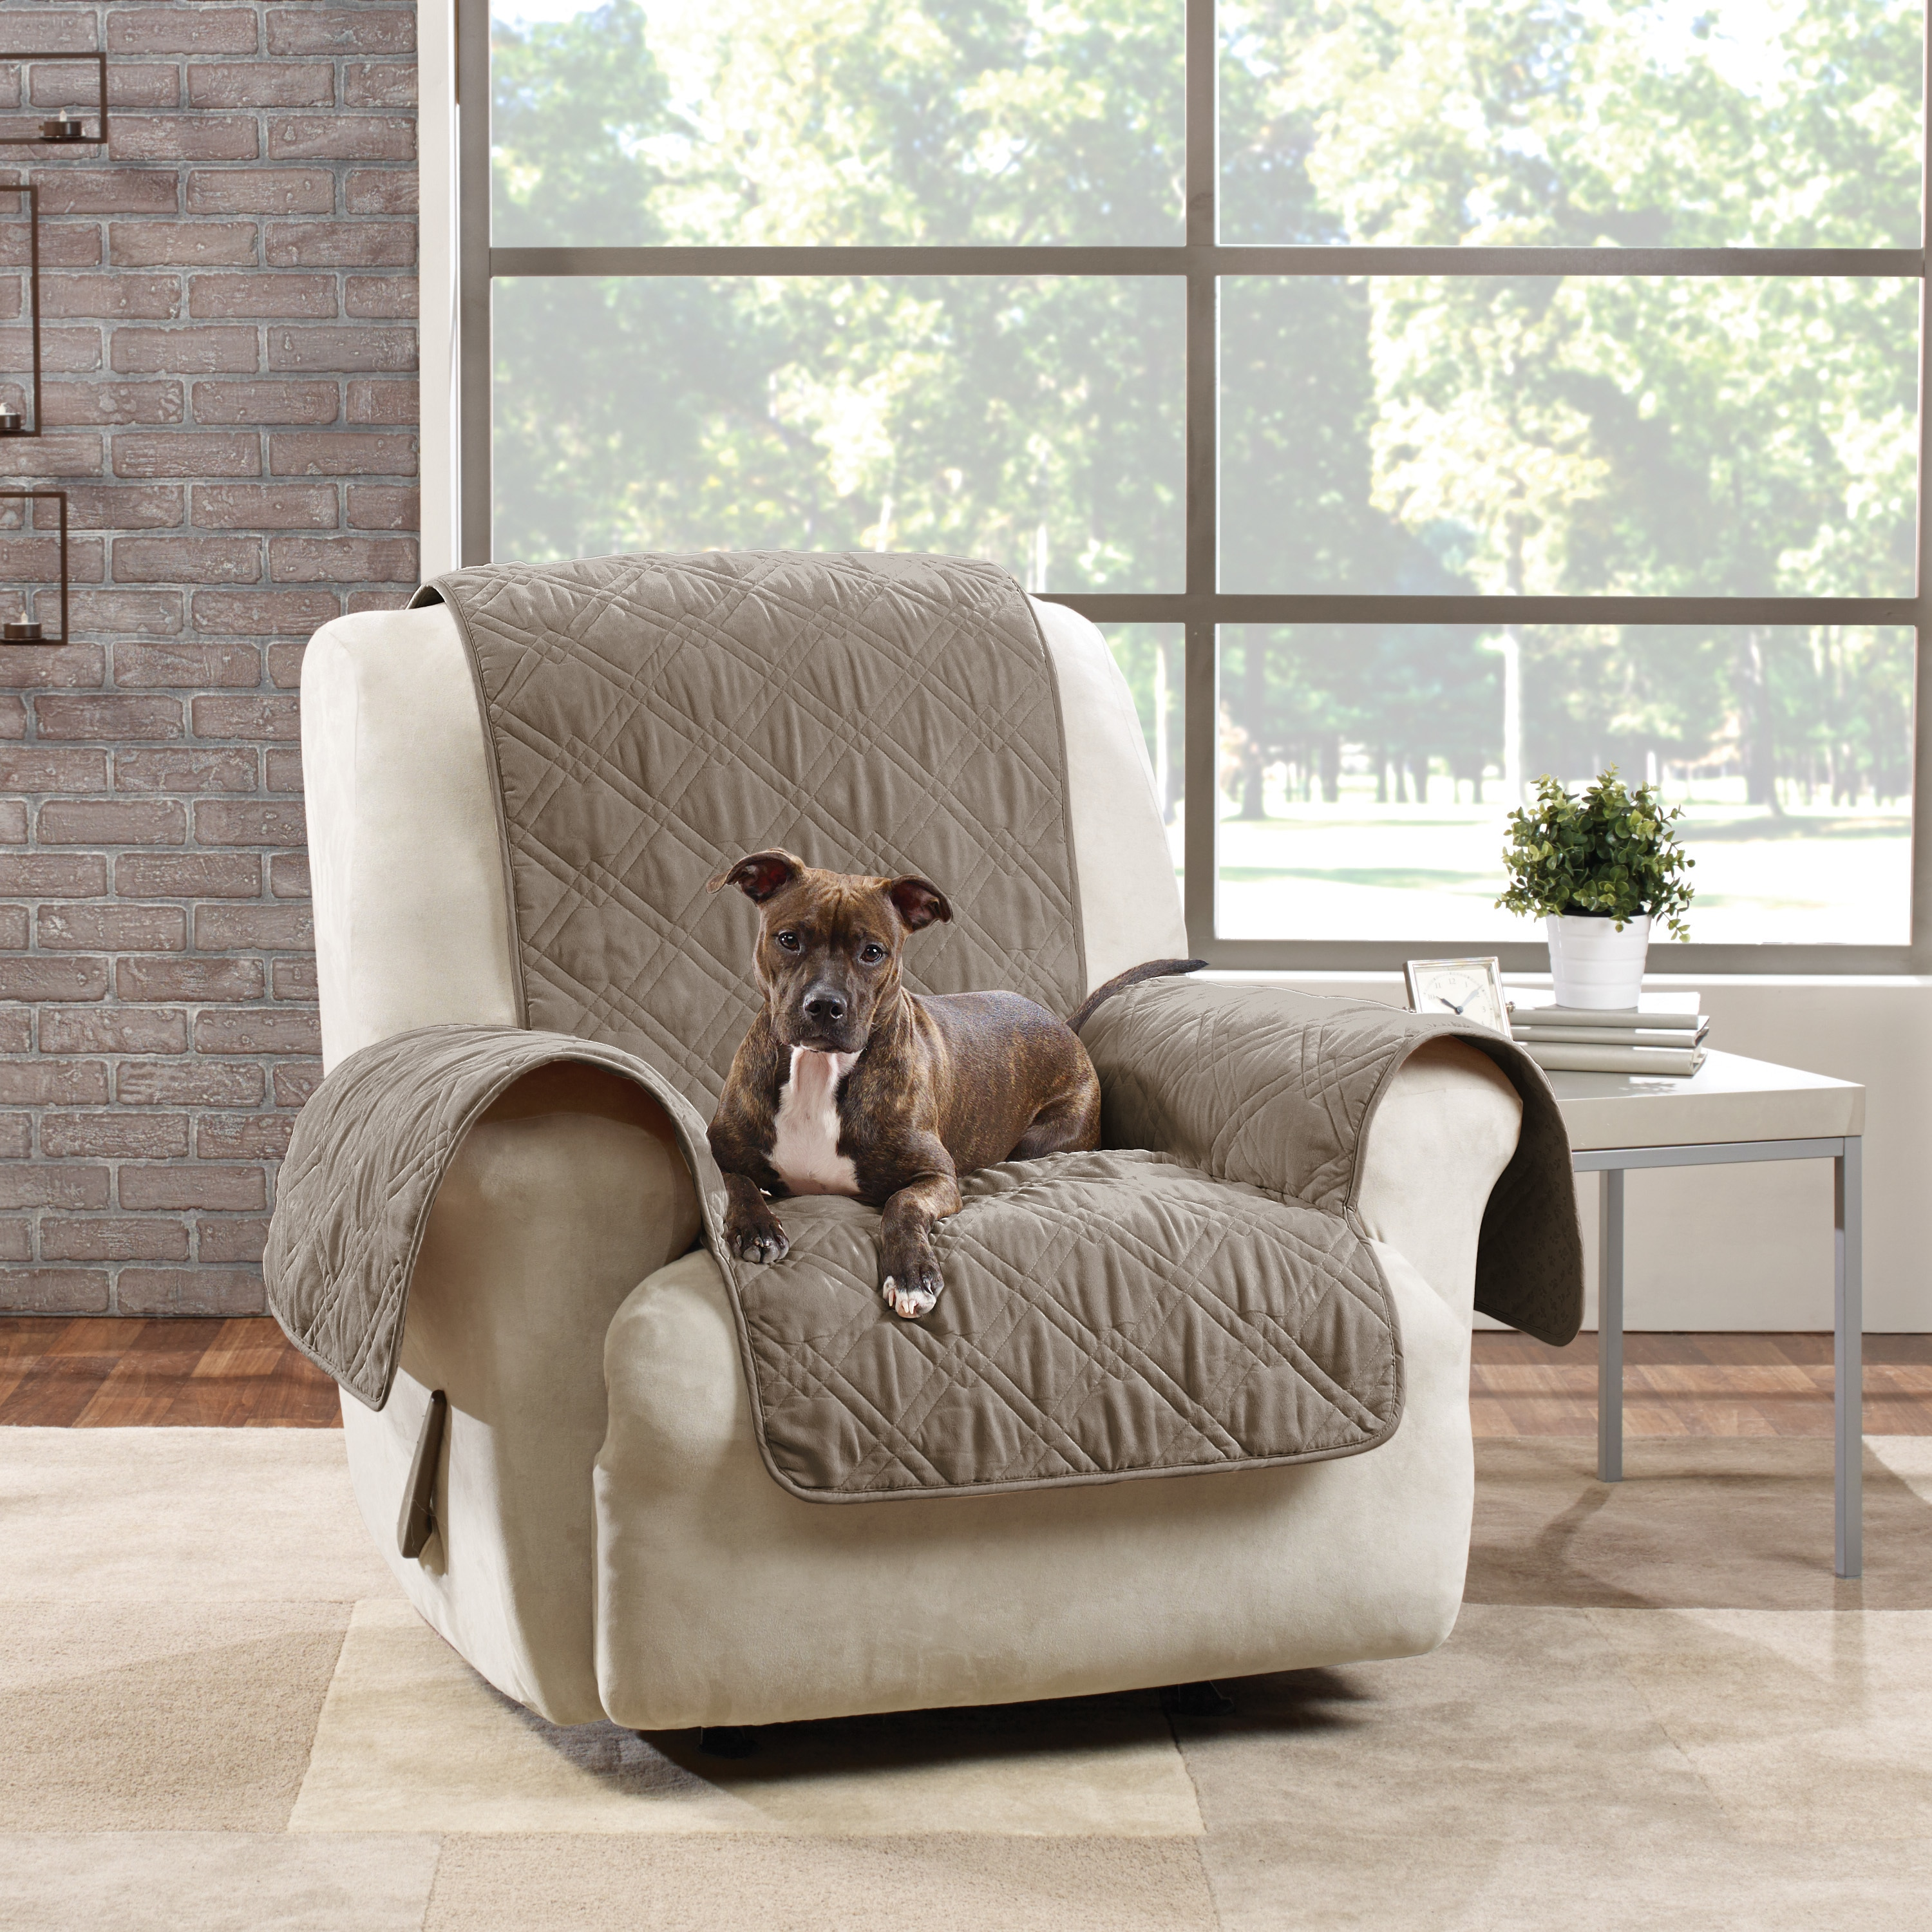 Enjoyable Sure Fit Microfiber Quilted Pet Throw Recliner Cover Short Links Chair Design For Home Short Linksinfo